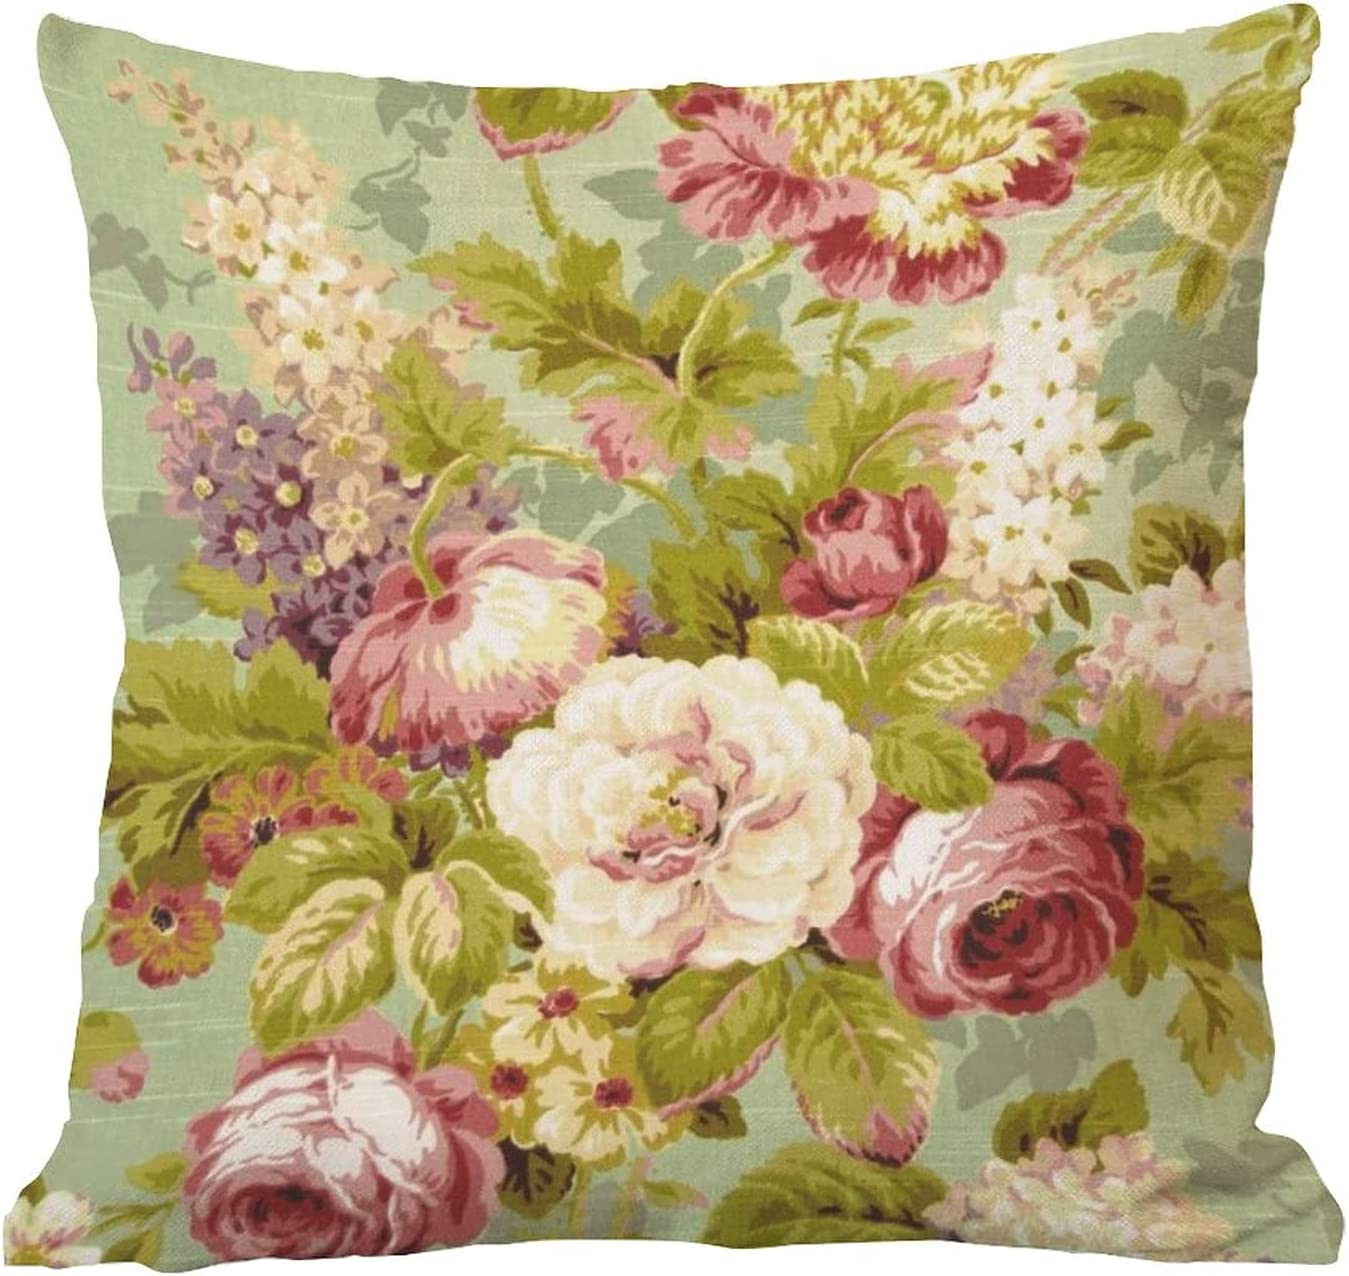 DKISEE Throw Pillow for Sleep Ranking TOP19 16inX16in Popular Couch and Square Bed Pil